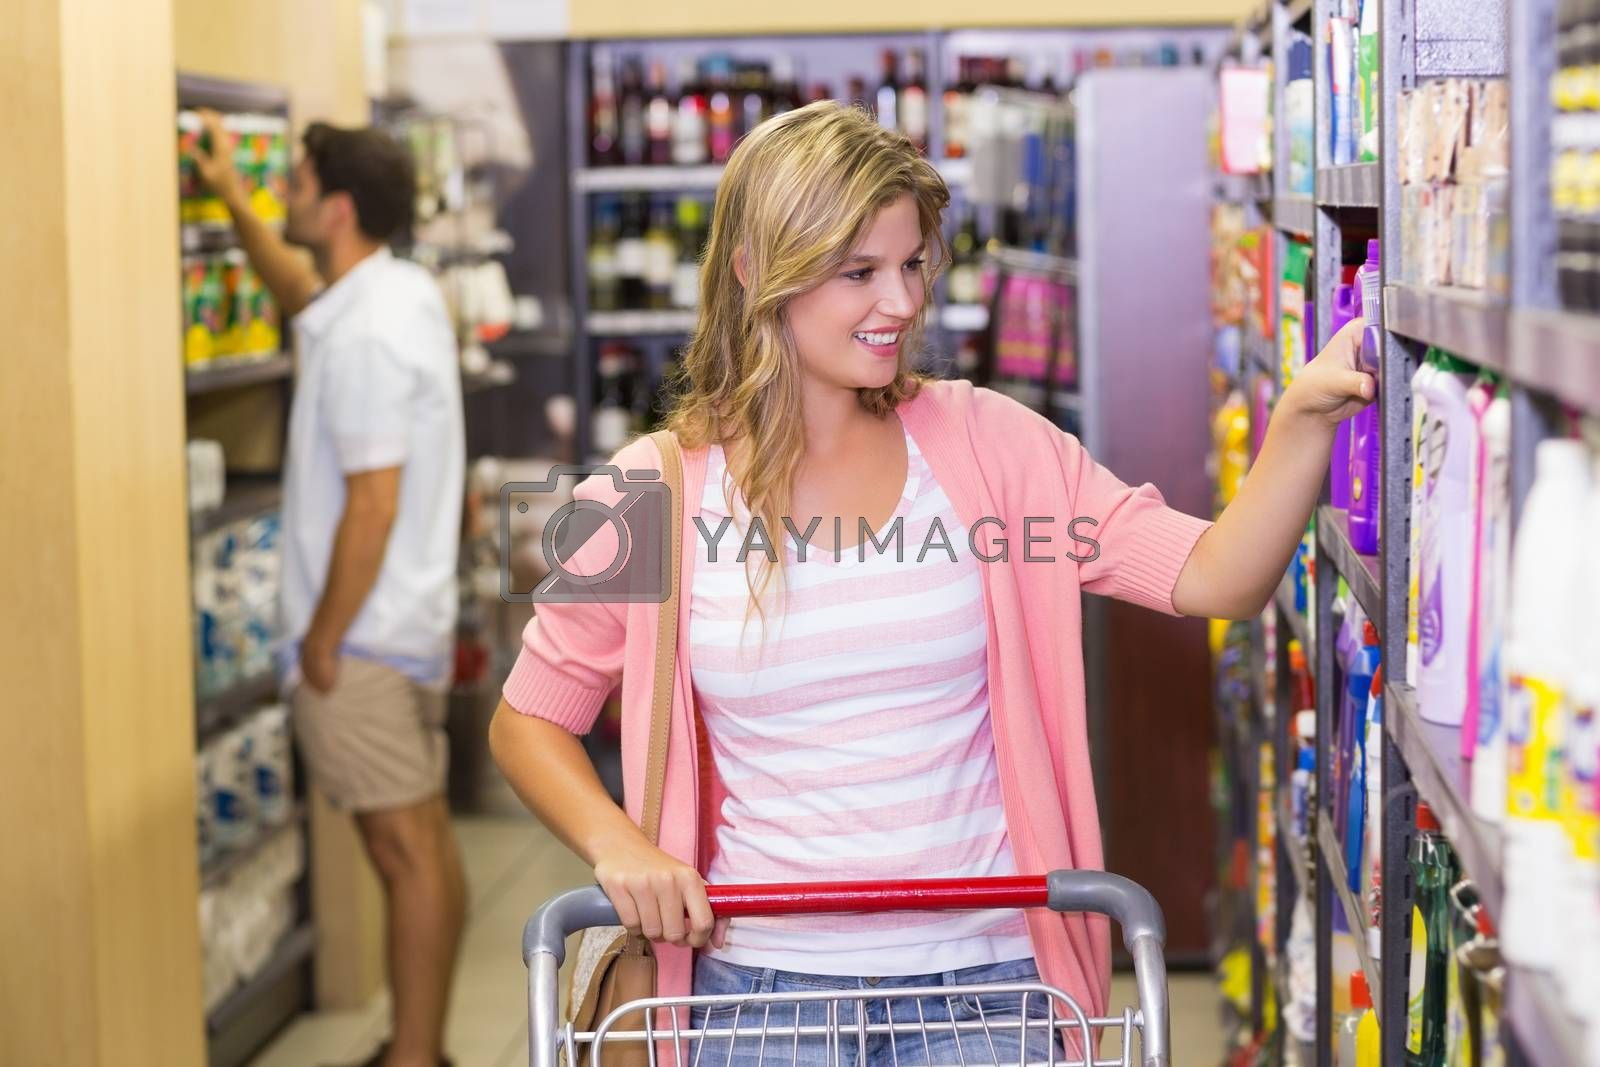 Royalty free image of Smiling blonde woman taking a product on shelf  by Wavebreakmedia